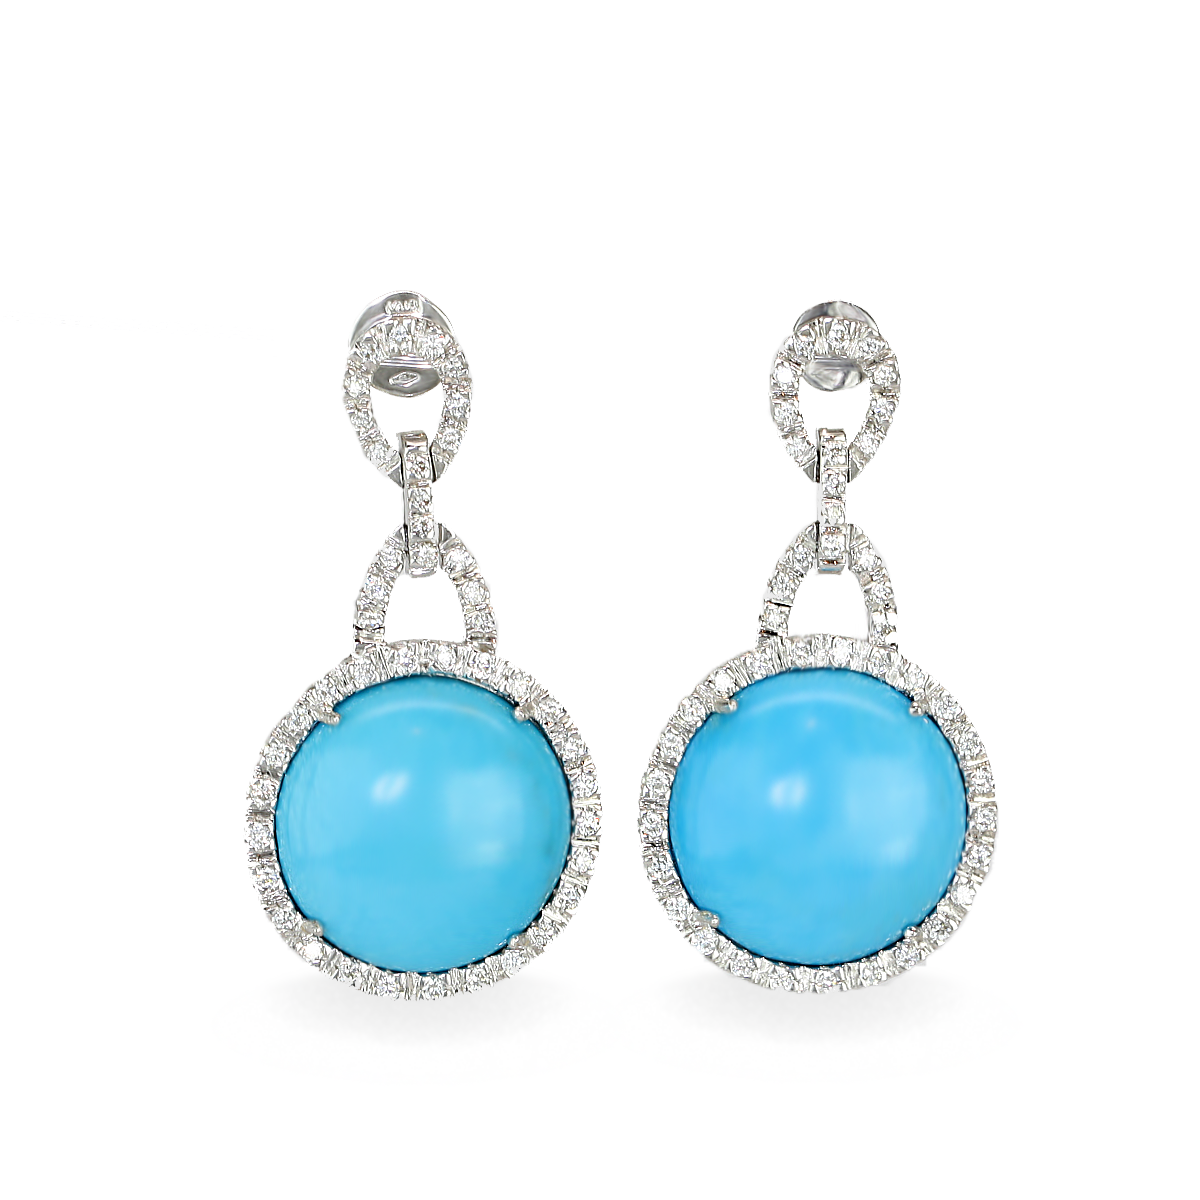 Turquoise Diamond And Gold Earrings By Lanae Fine Jewelry